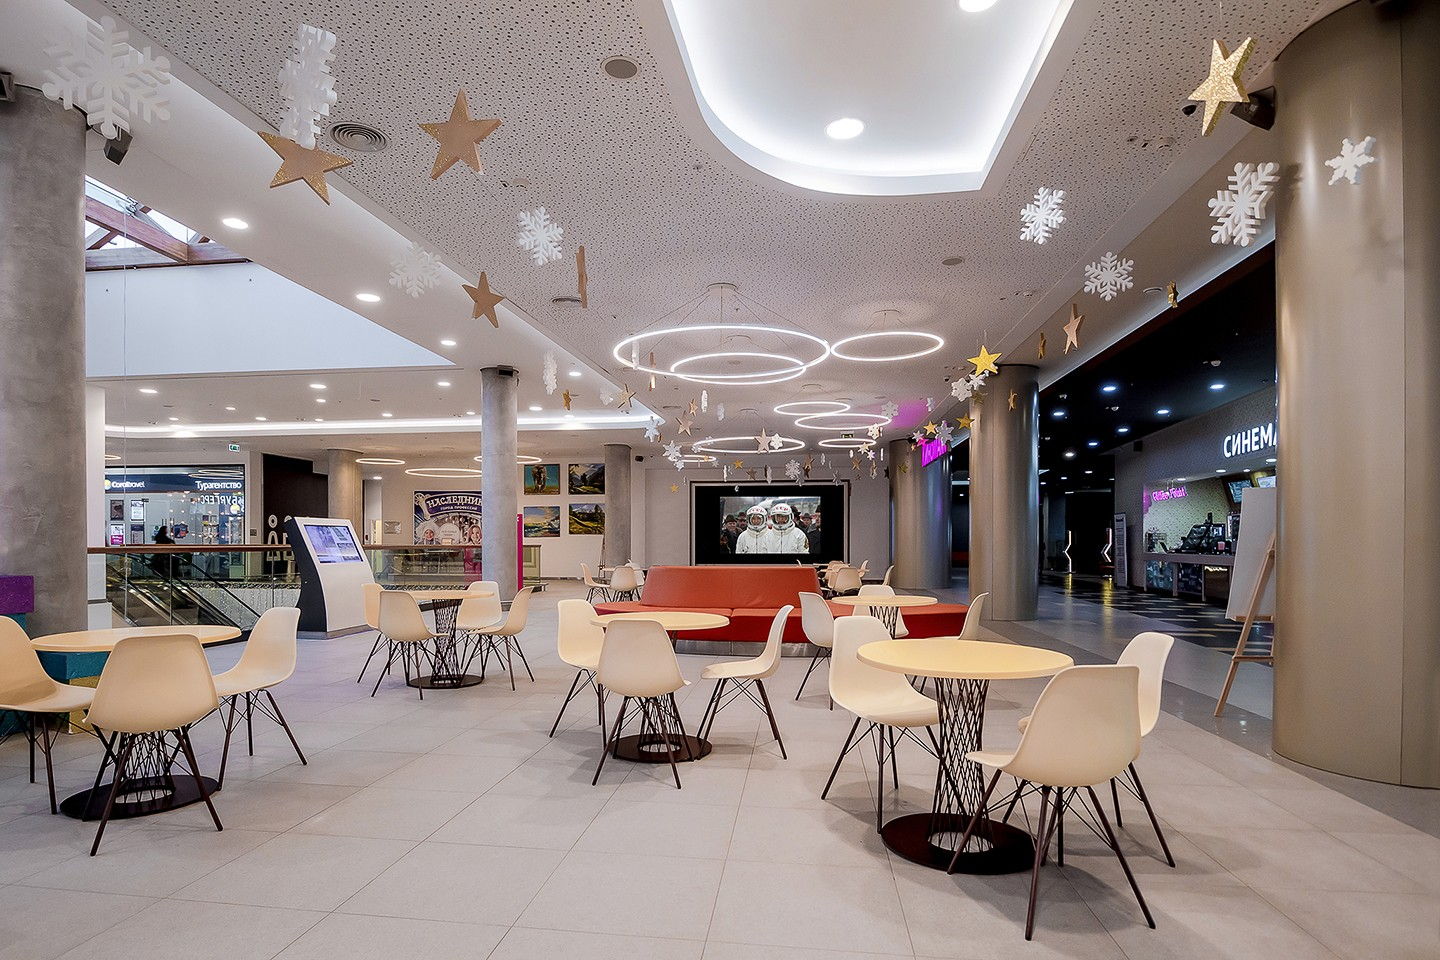 Cinema in a shopping mall. interior photography of real estate in Moscow